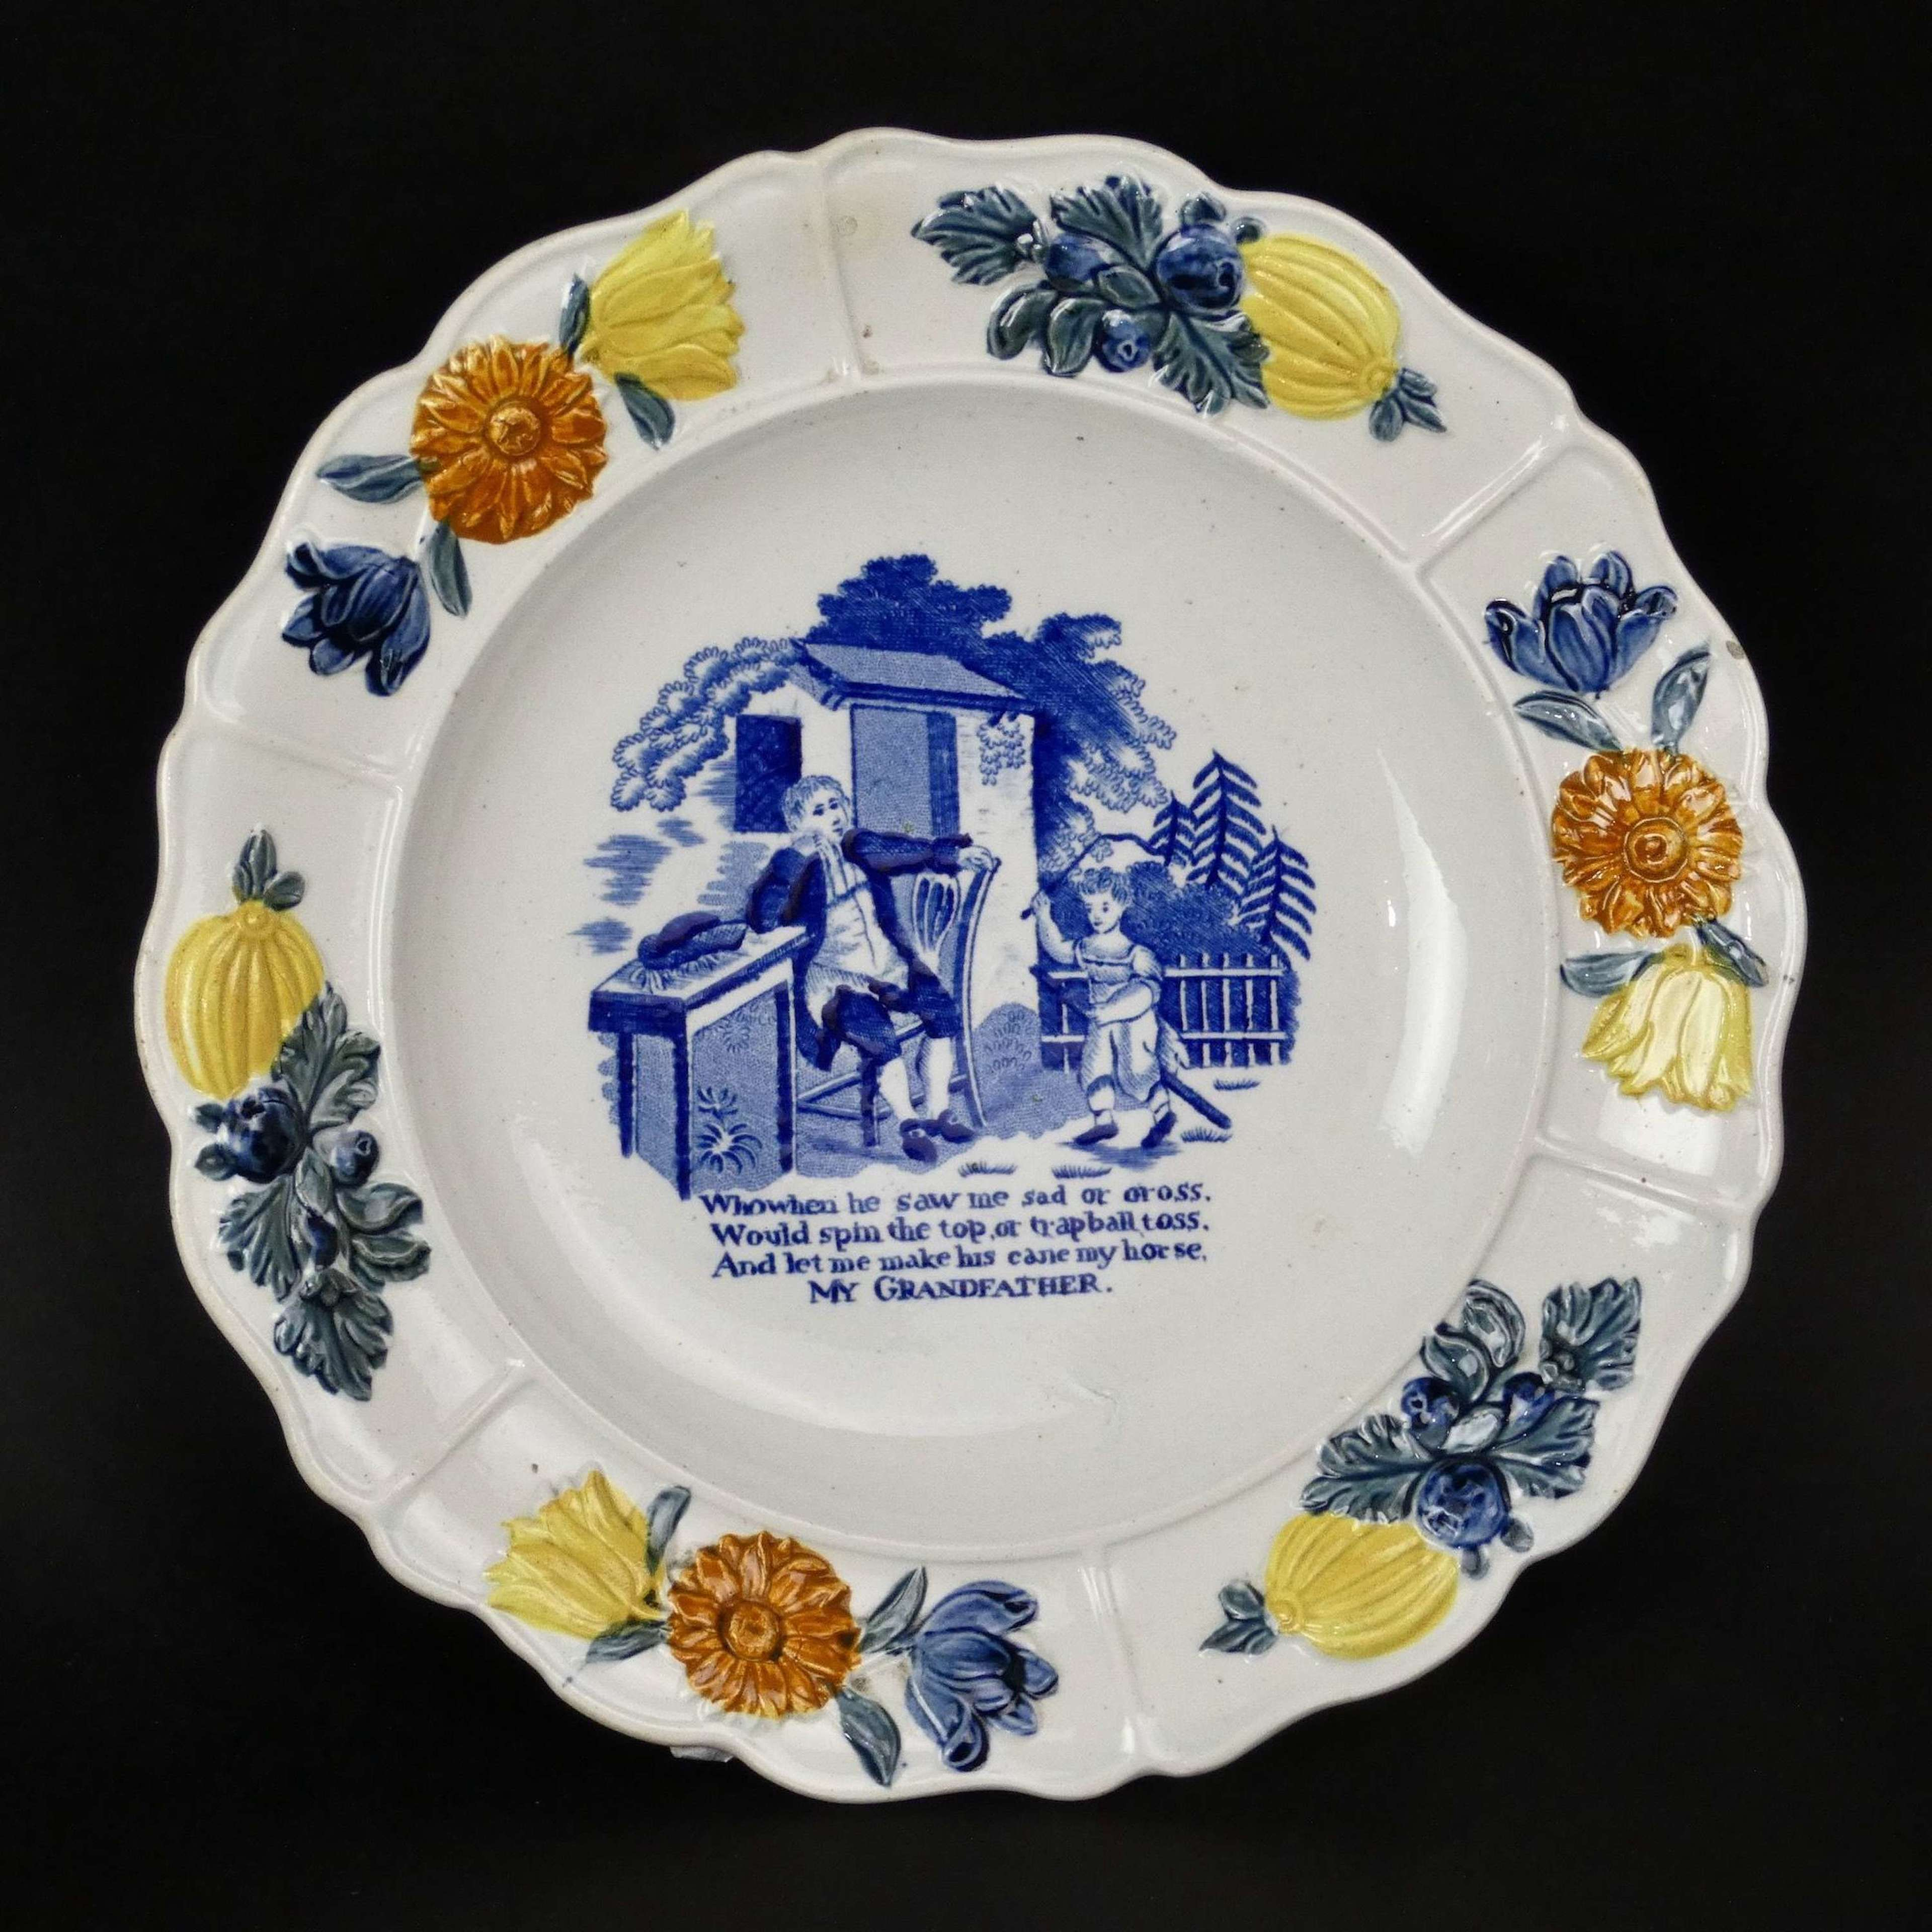 Child's plate with verse